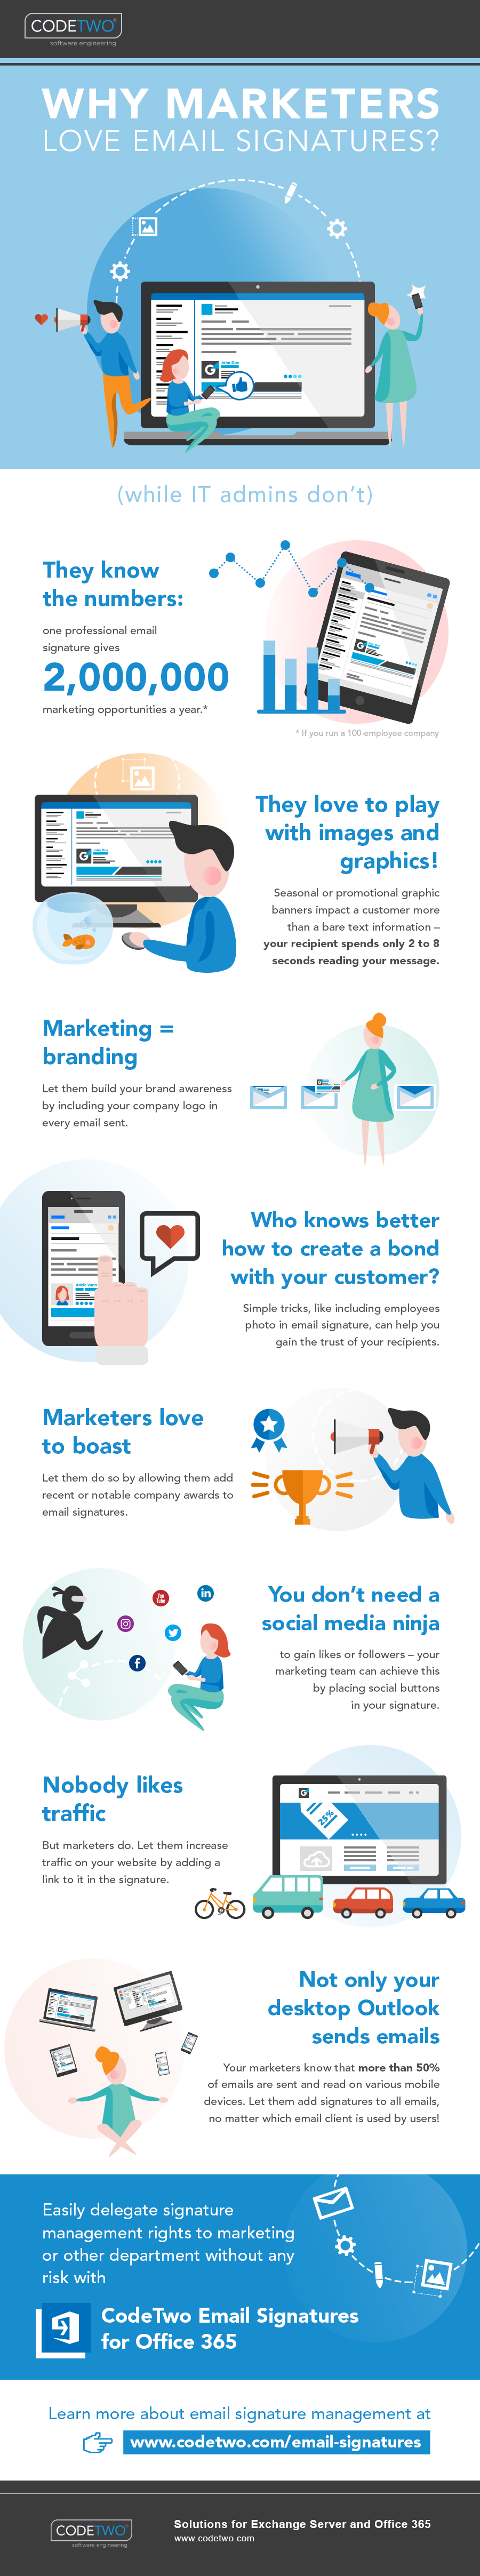 why marketers love email signatures infographic - How to Utilize Your Email Signature Effectively When Marketing via Email Lists